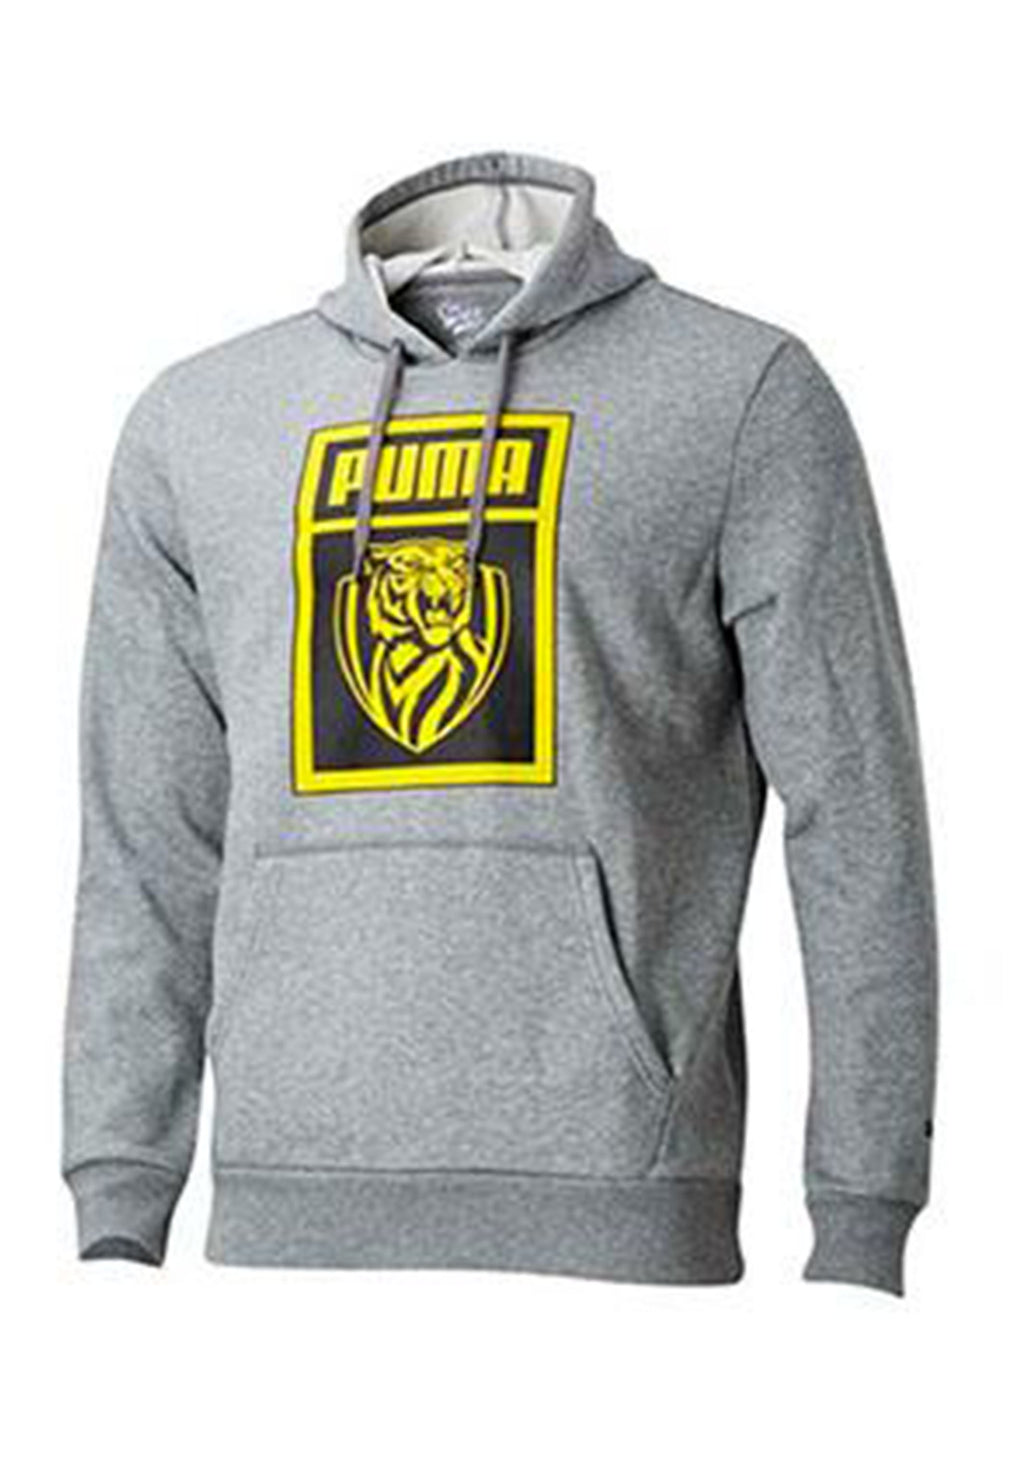 PUMA RICHMOND TIGERS FOOTBALL CLUB SHOE TAG HOODIE YOUTH MEDIUM GREY HEATHER <br> 70383702